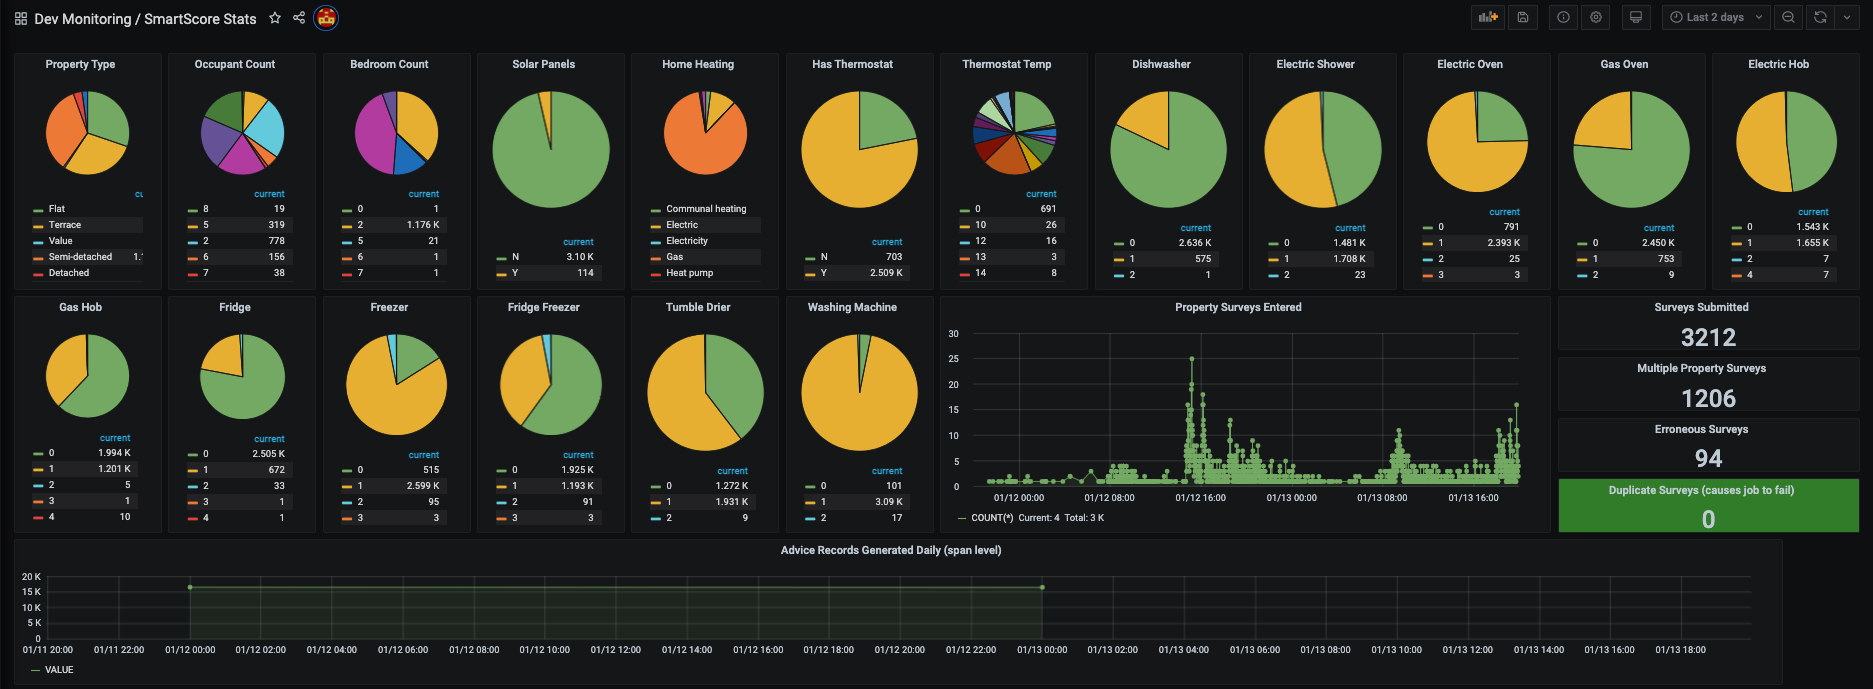 Internal dashboard showing a Utilita customer's individual appliances and how much energy they're consuming